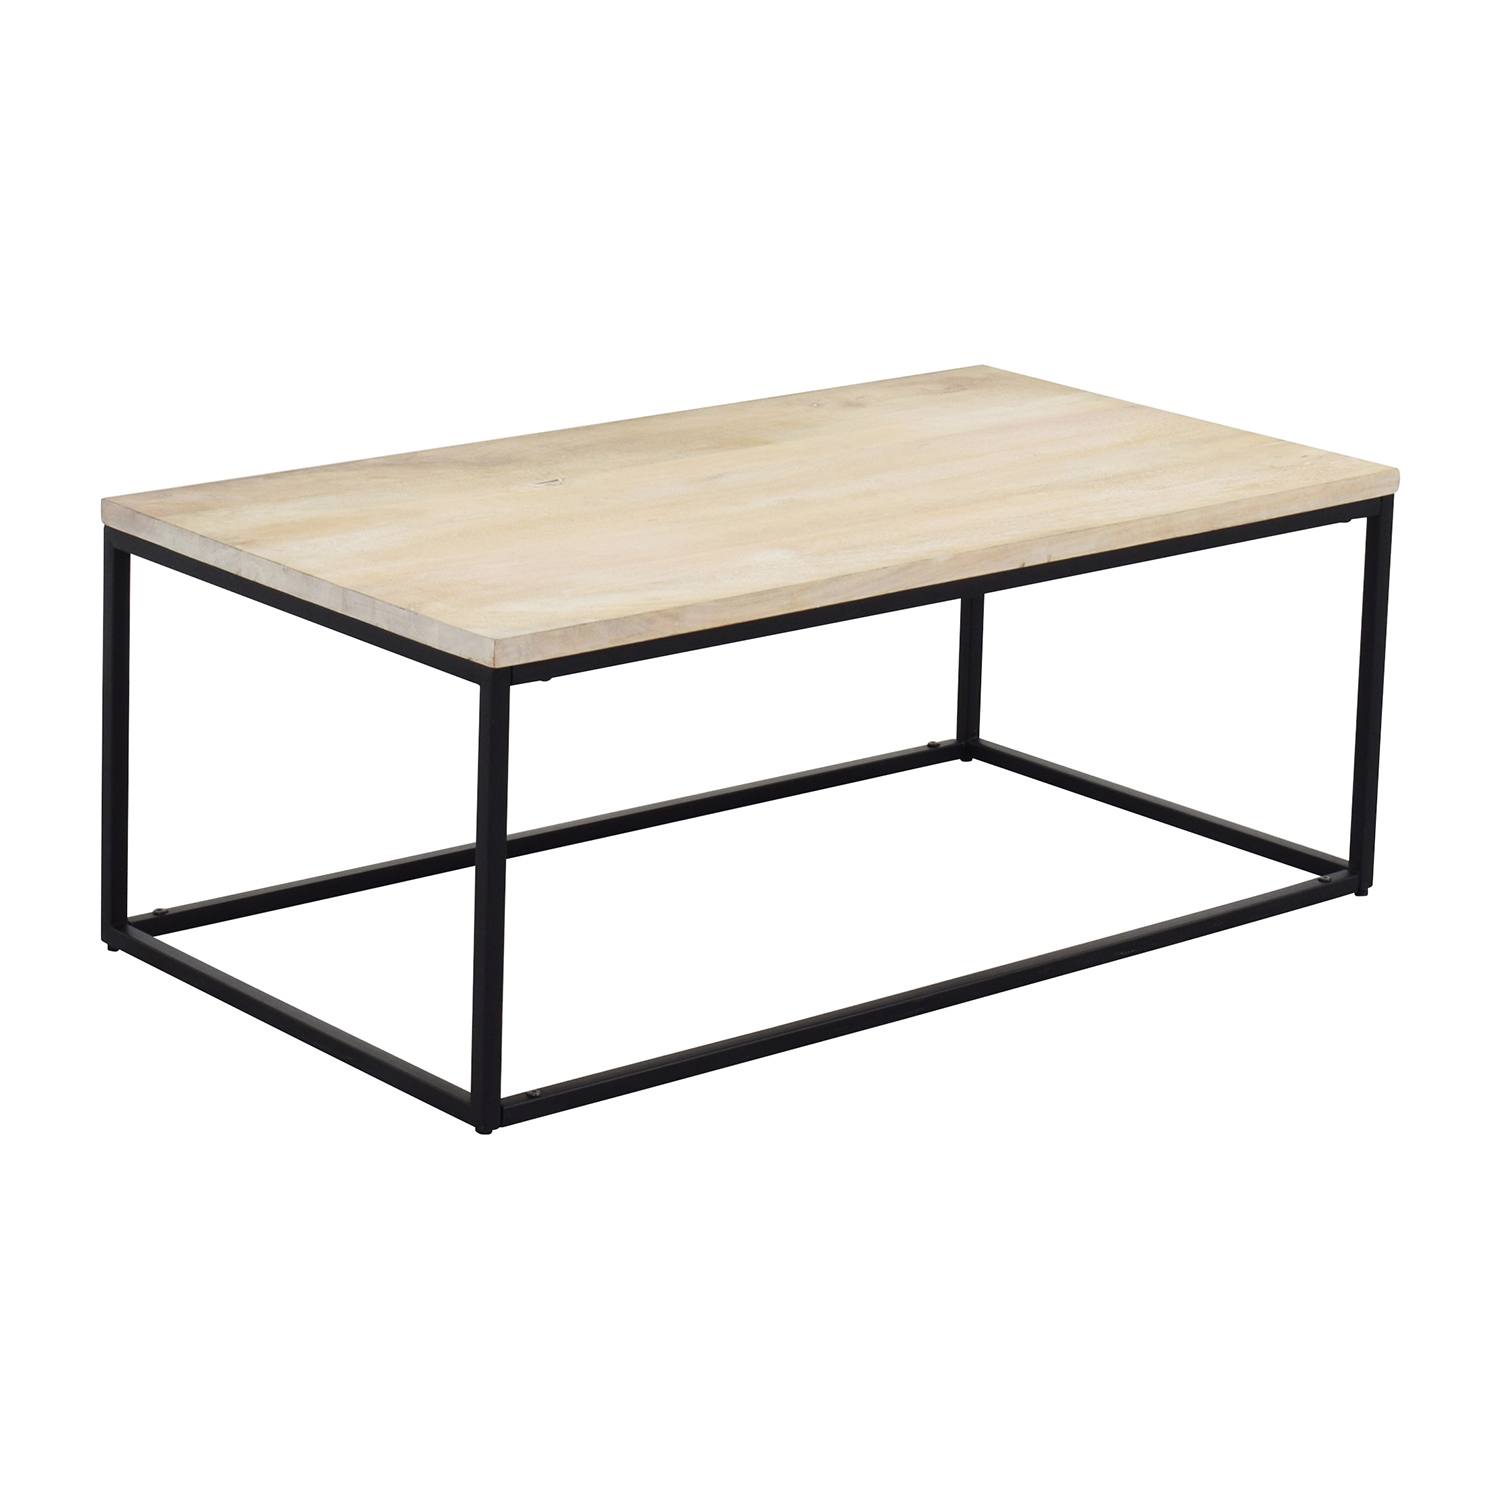 28% OFF West Elm West Elm Box Frame Coffee Table White Wash Tables